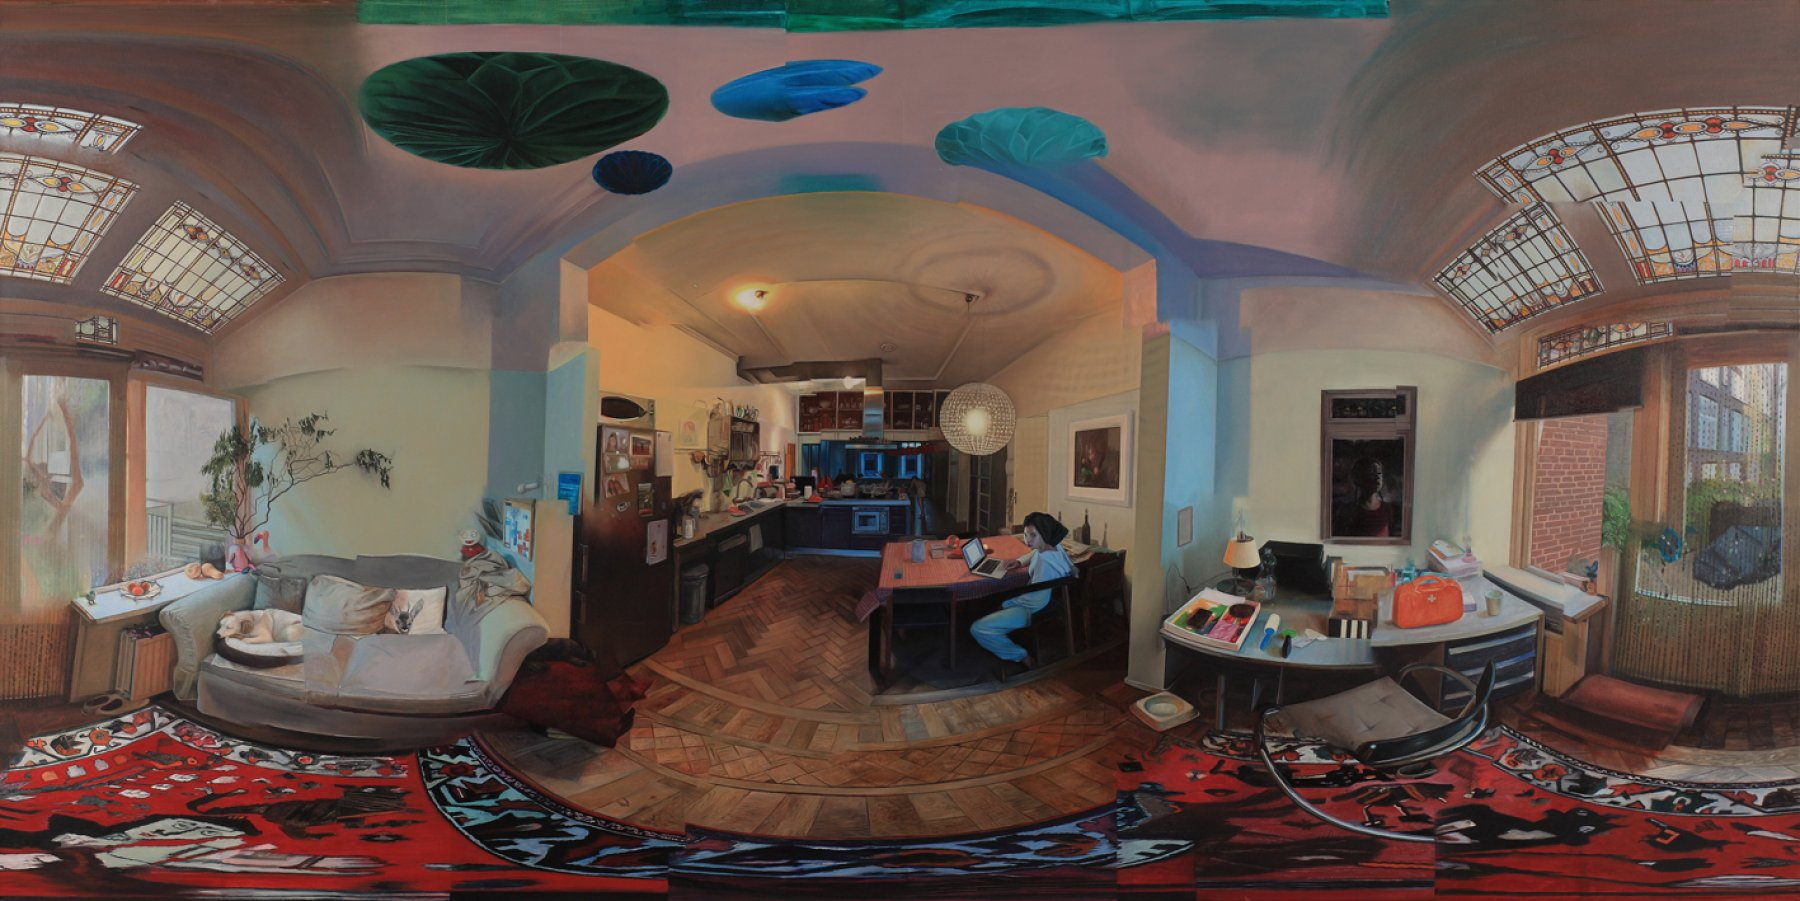 Univeral Painting VR Project #1: Celebtration